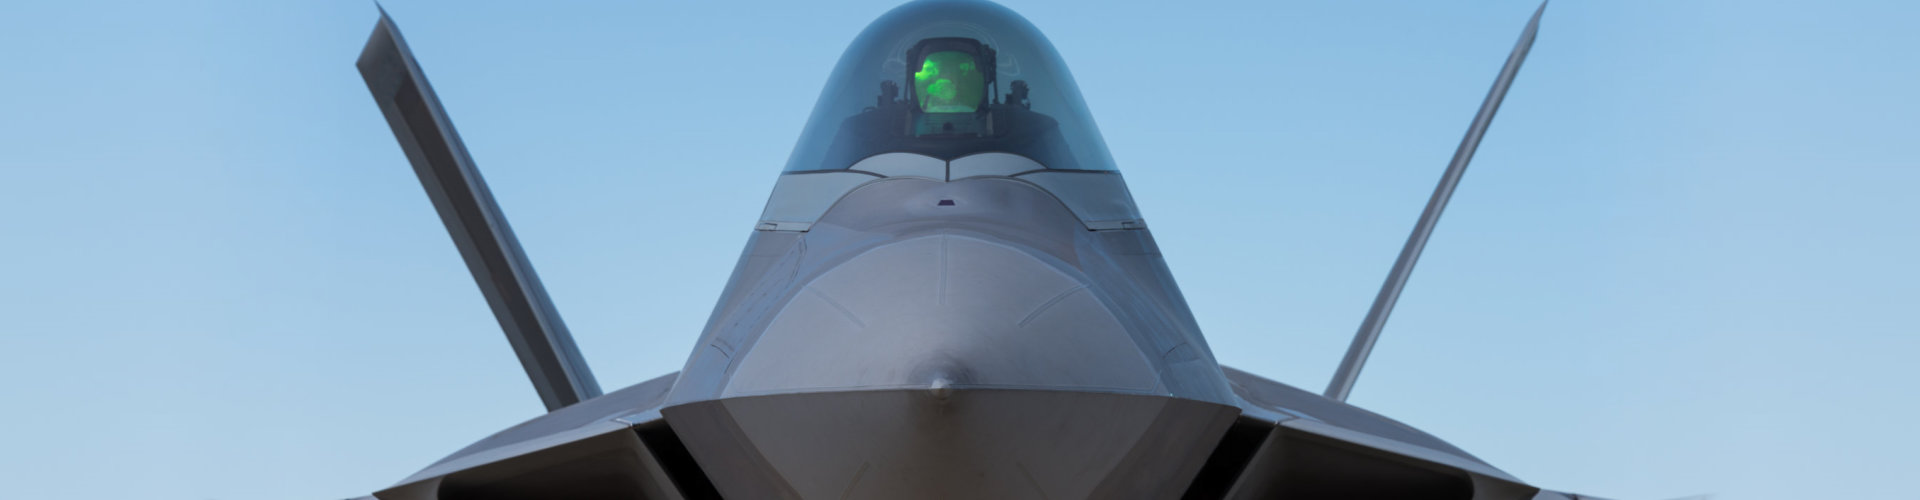 F-22 Raptor fighter bomber front view